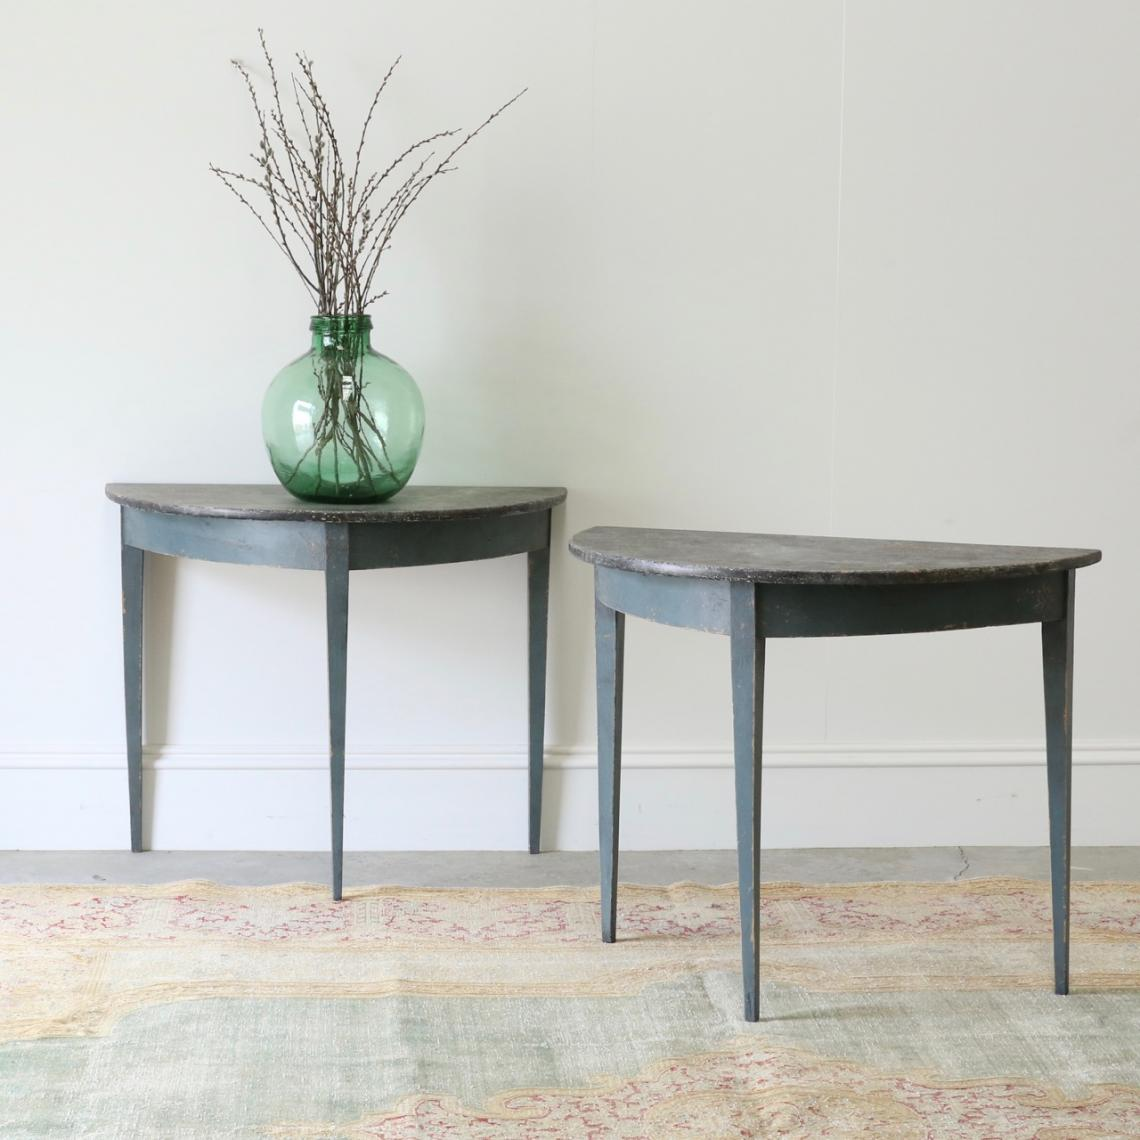 113-43 - Demilune Console Tables